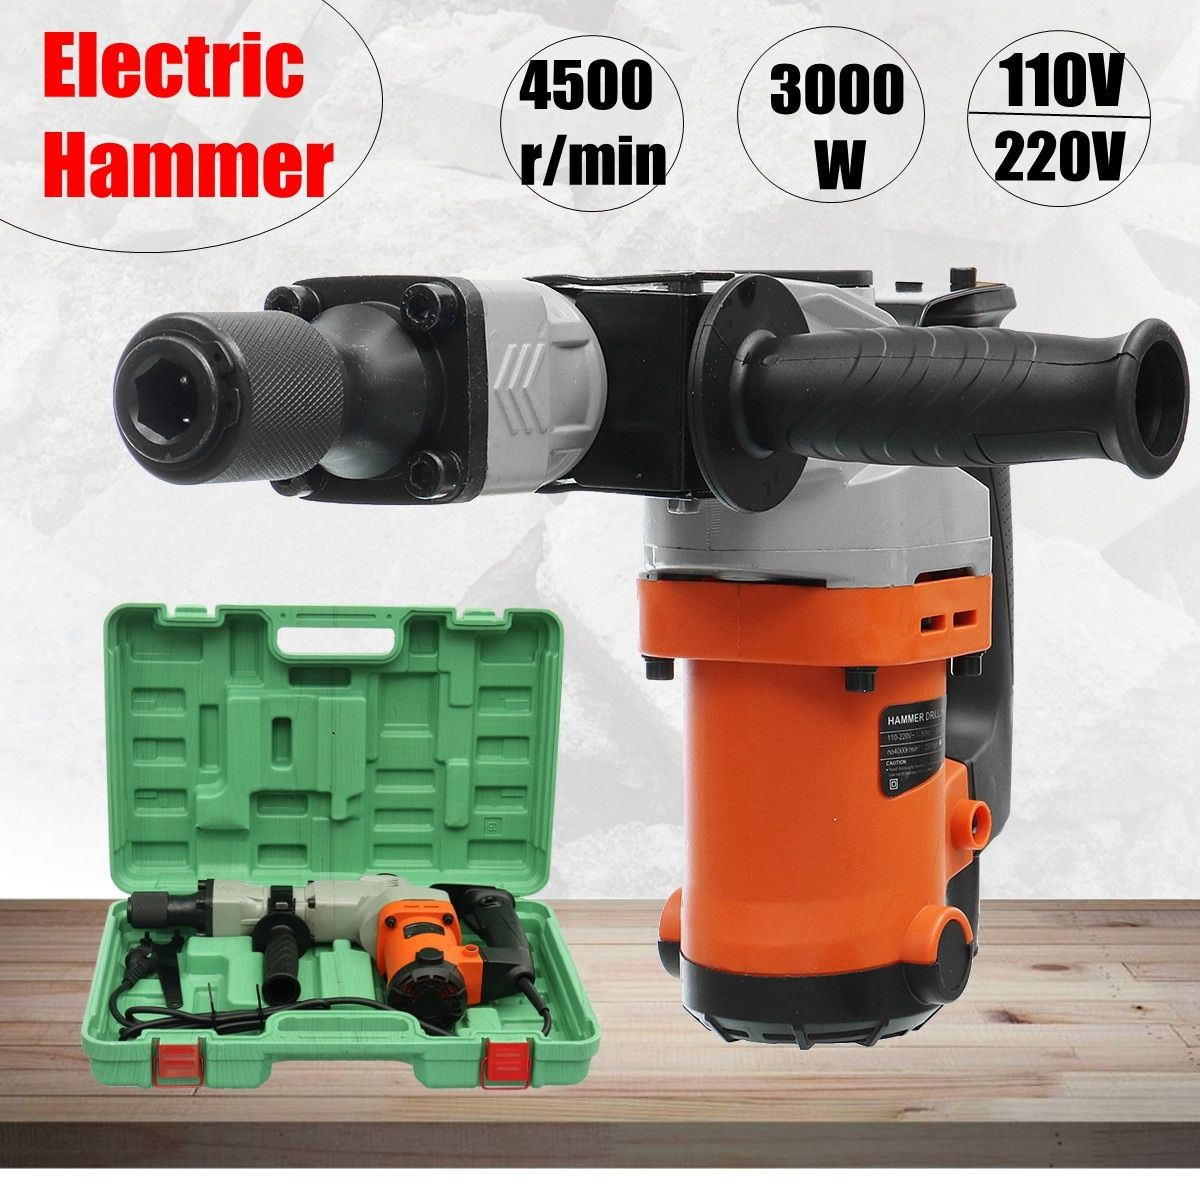 220V Electric Drills 3000W Electric Demolition Hammer Drill Concrete Breaker Punch Jackhammer 3000BPM